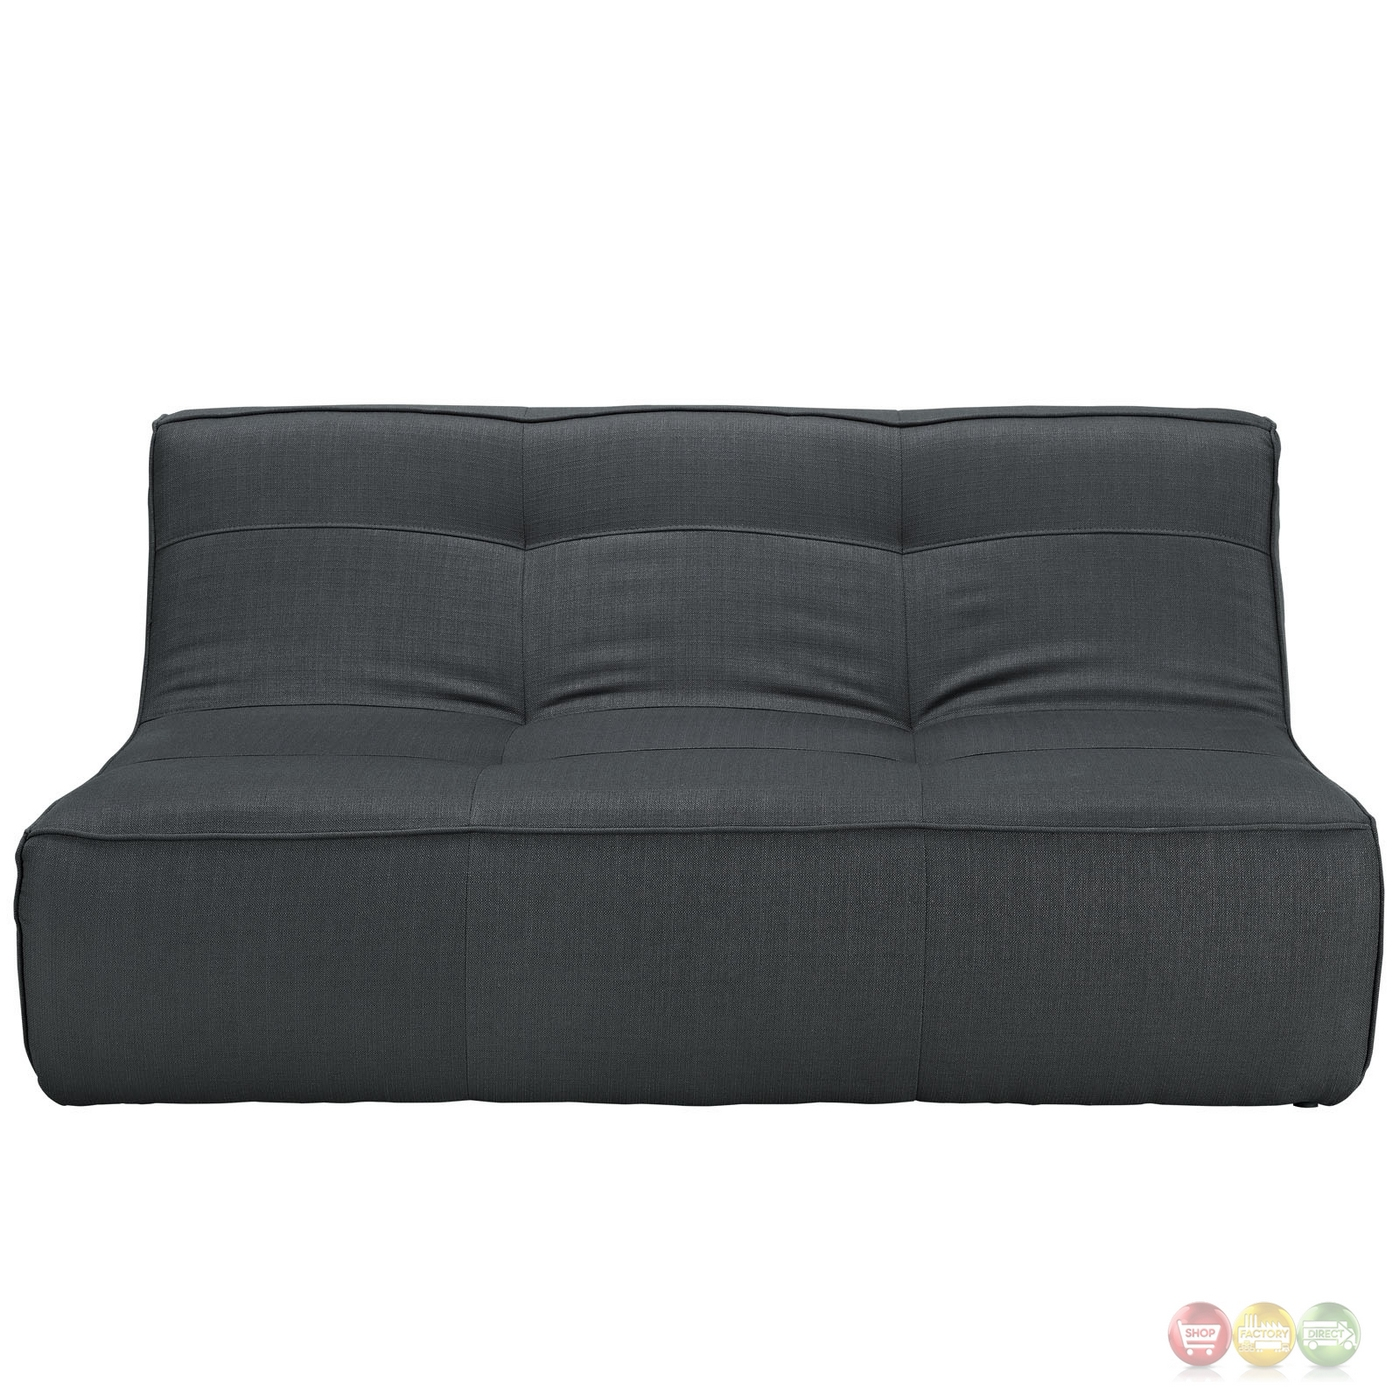 Align Contemporary Loveseat Upholstered In Bonded Leather Charcoal